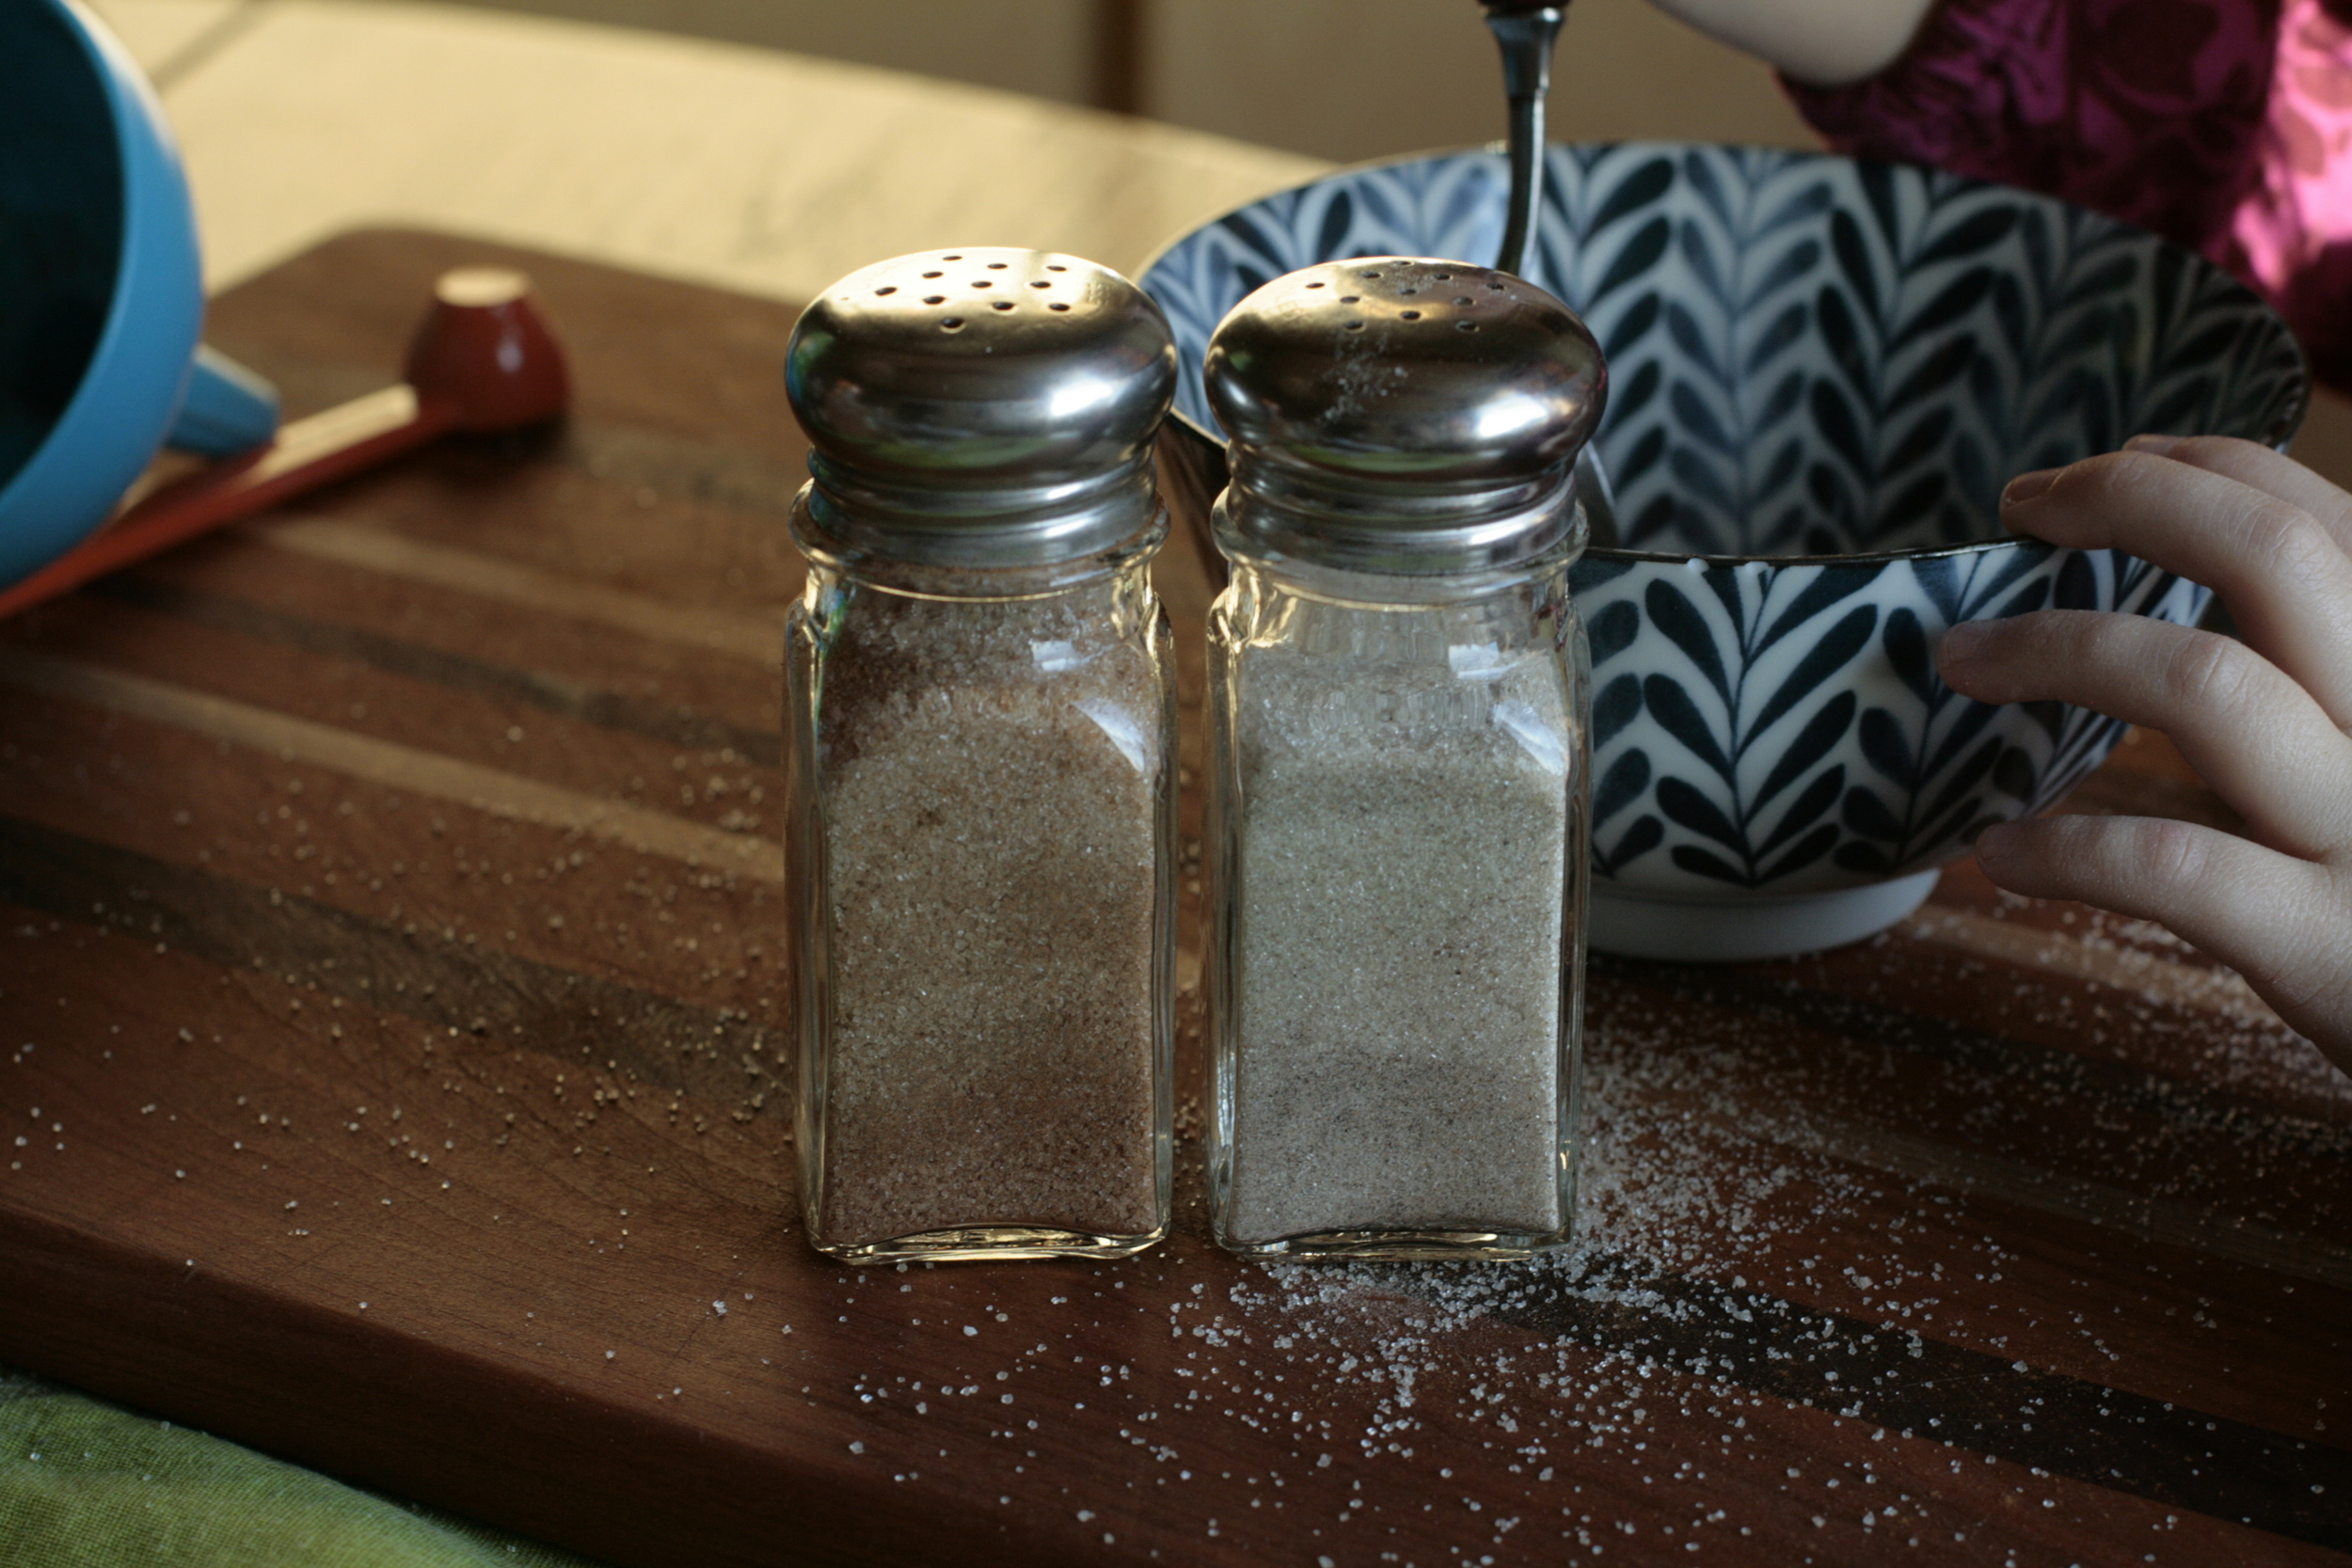 cinnamon sugar and cardamom sugar